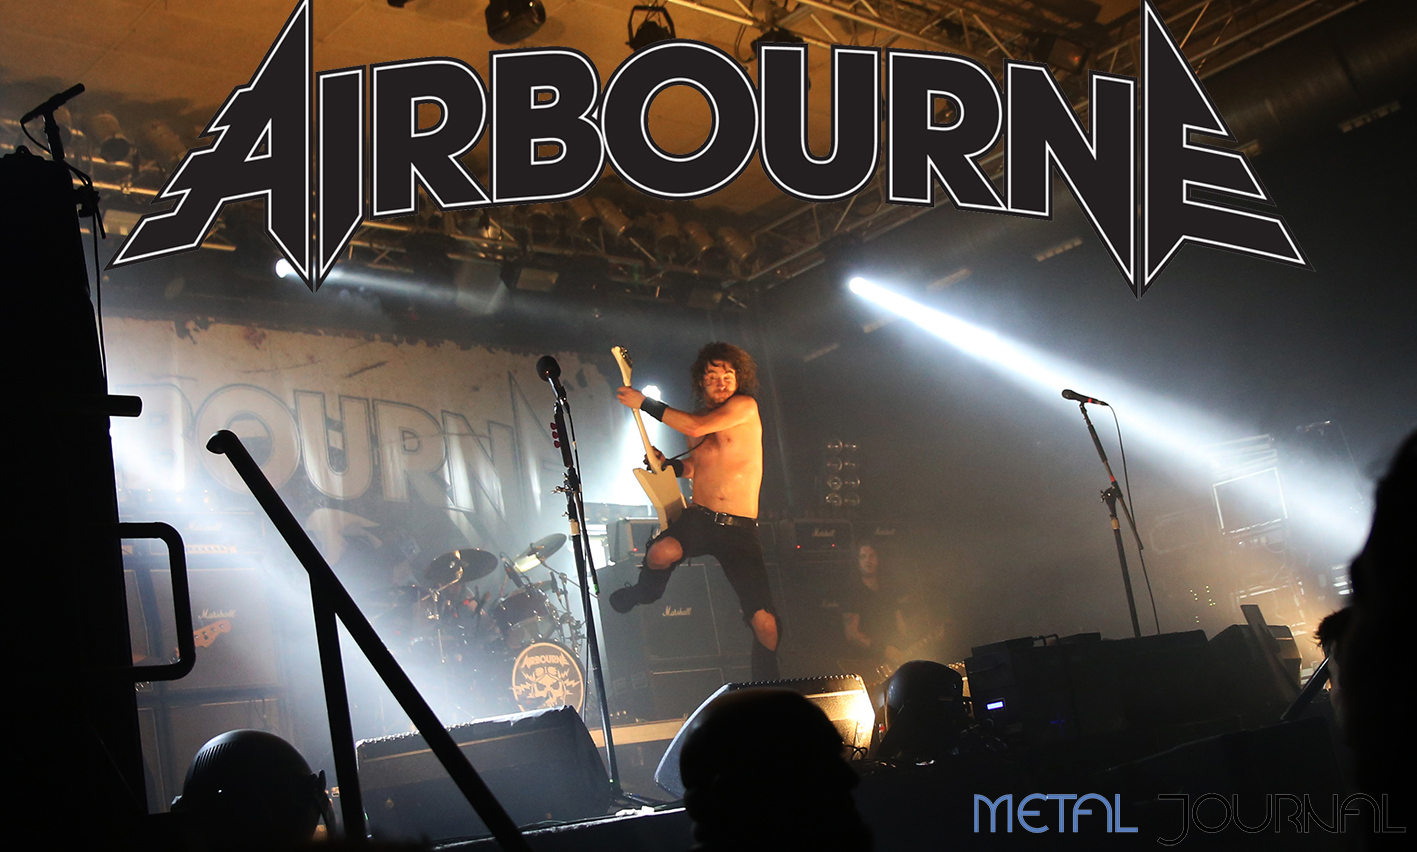 airbourne entrevista - metal journal 2019 pic 4